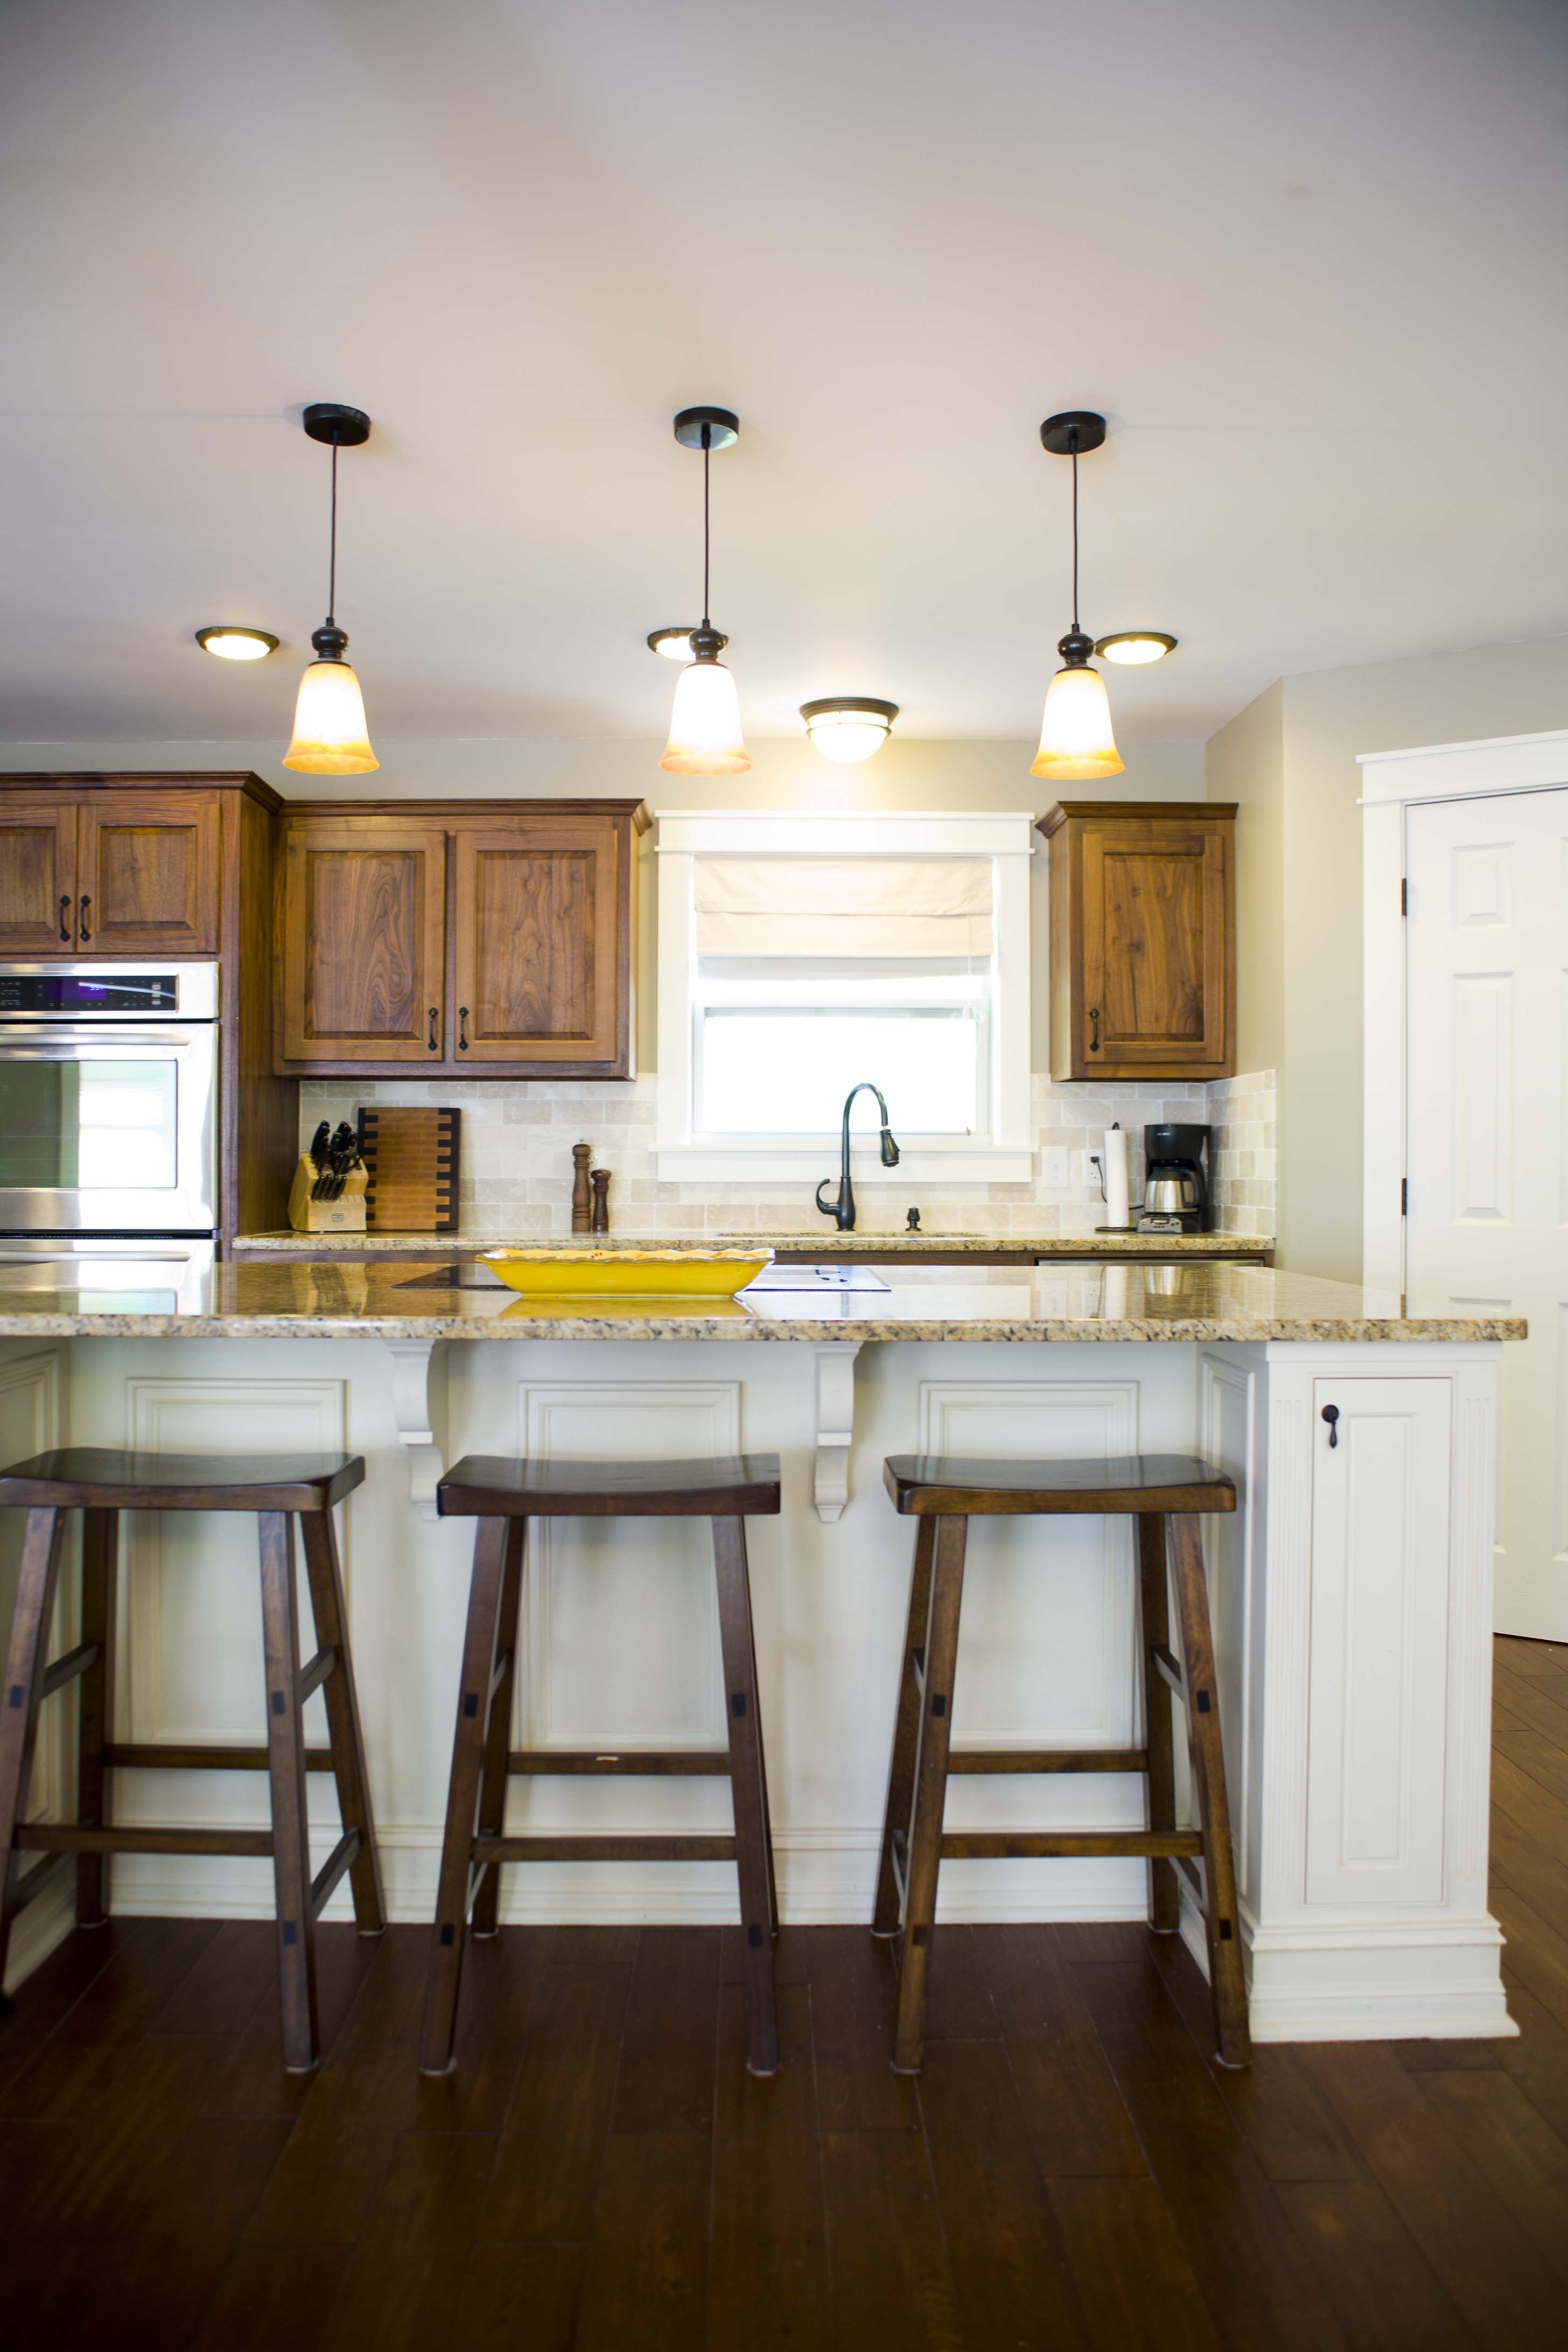 kitchen island with seating for 3 purse hooks to boot yee haw kitchen island designs with on kitchen ideas with island id=34406